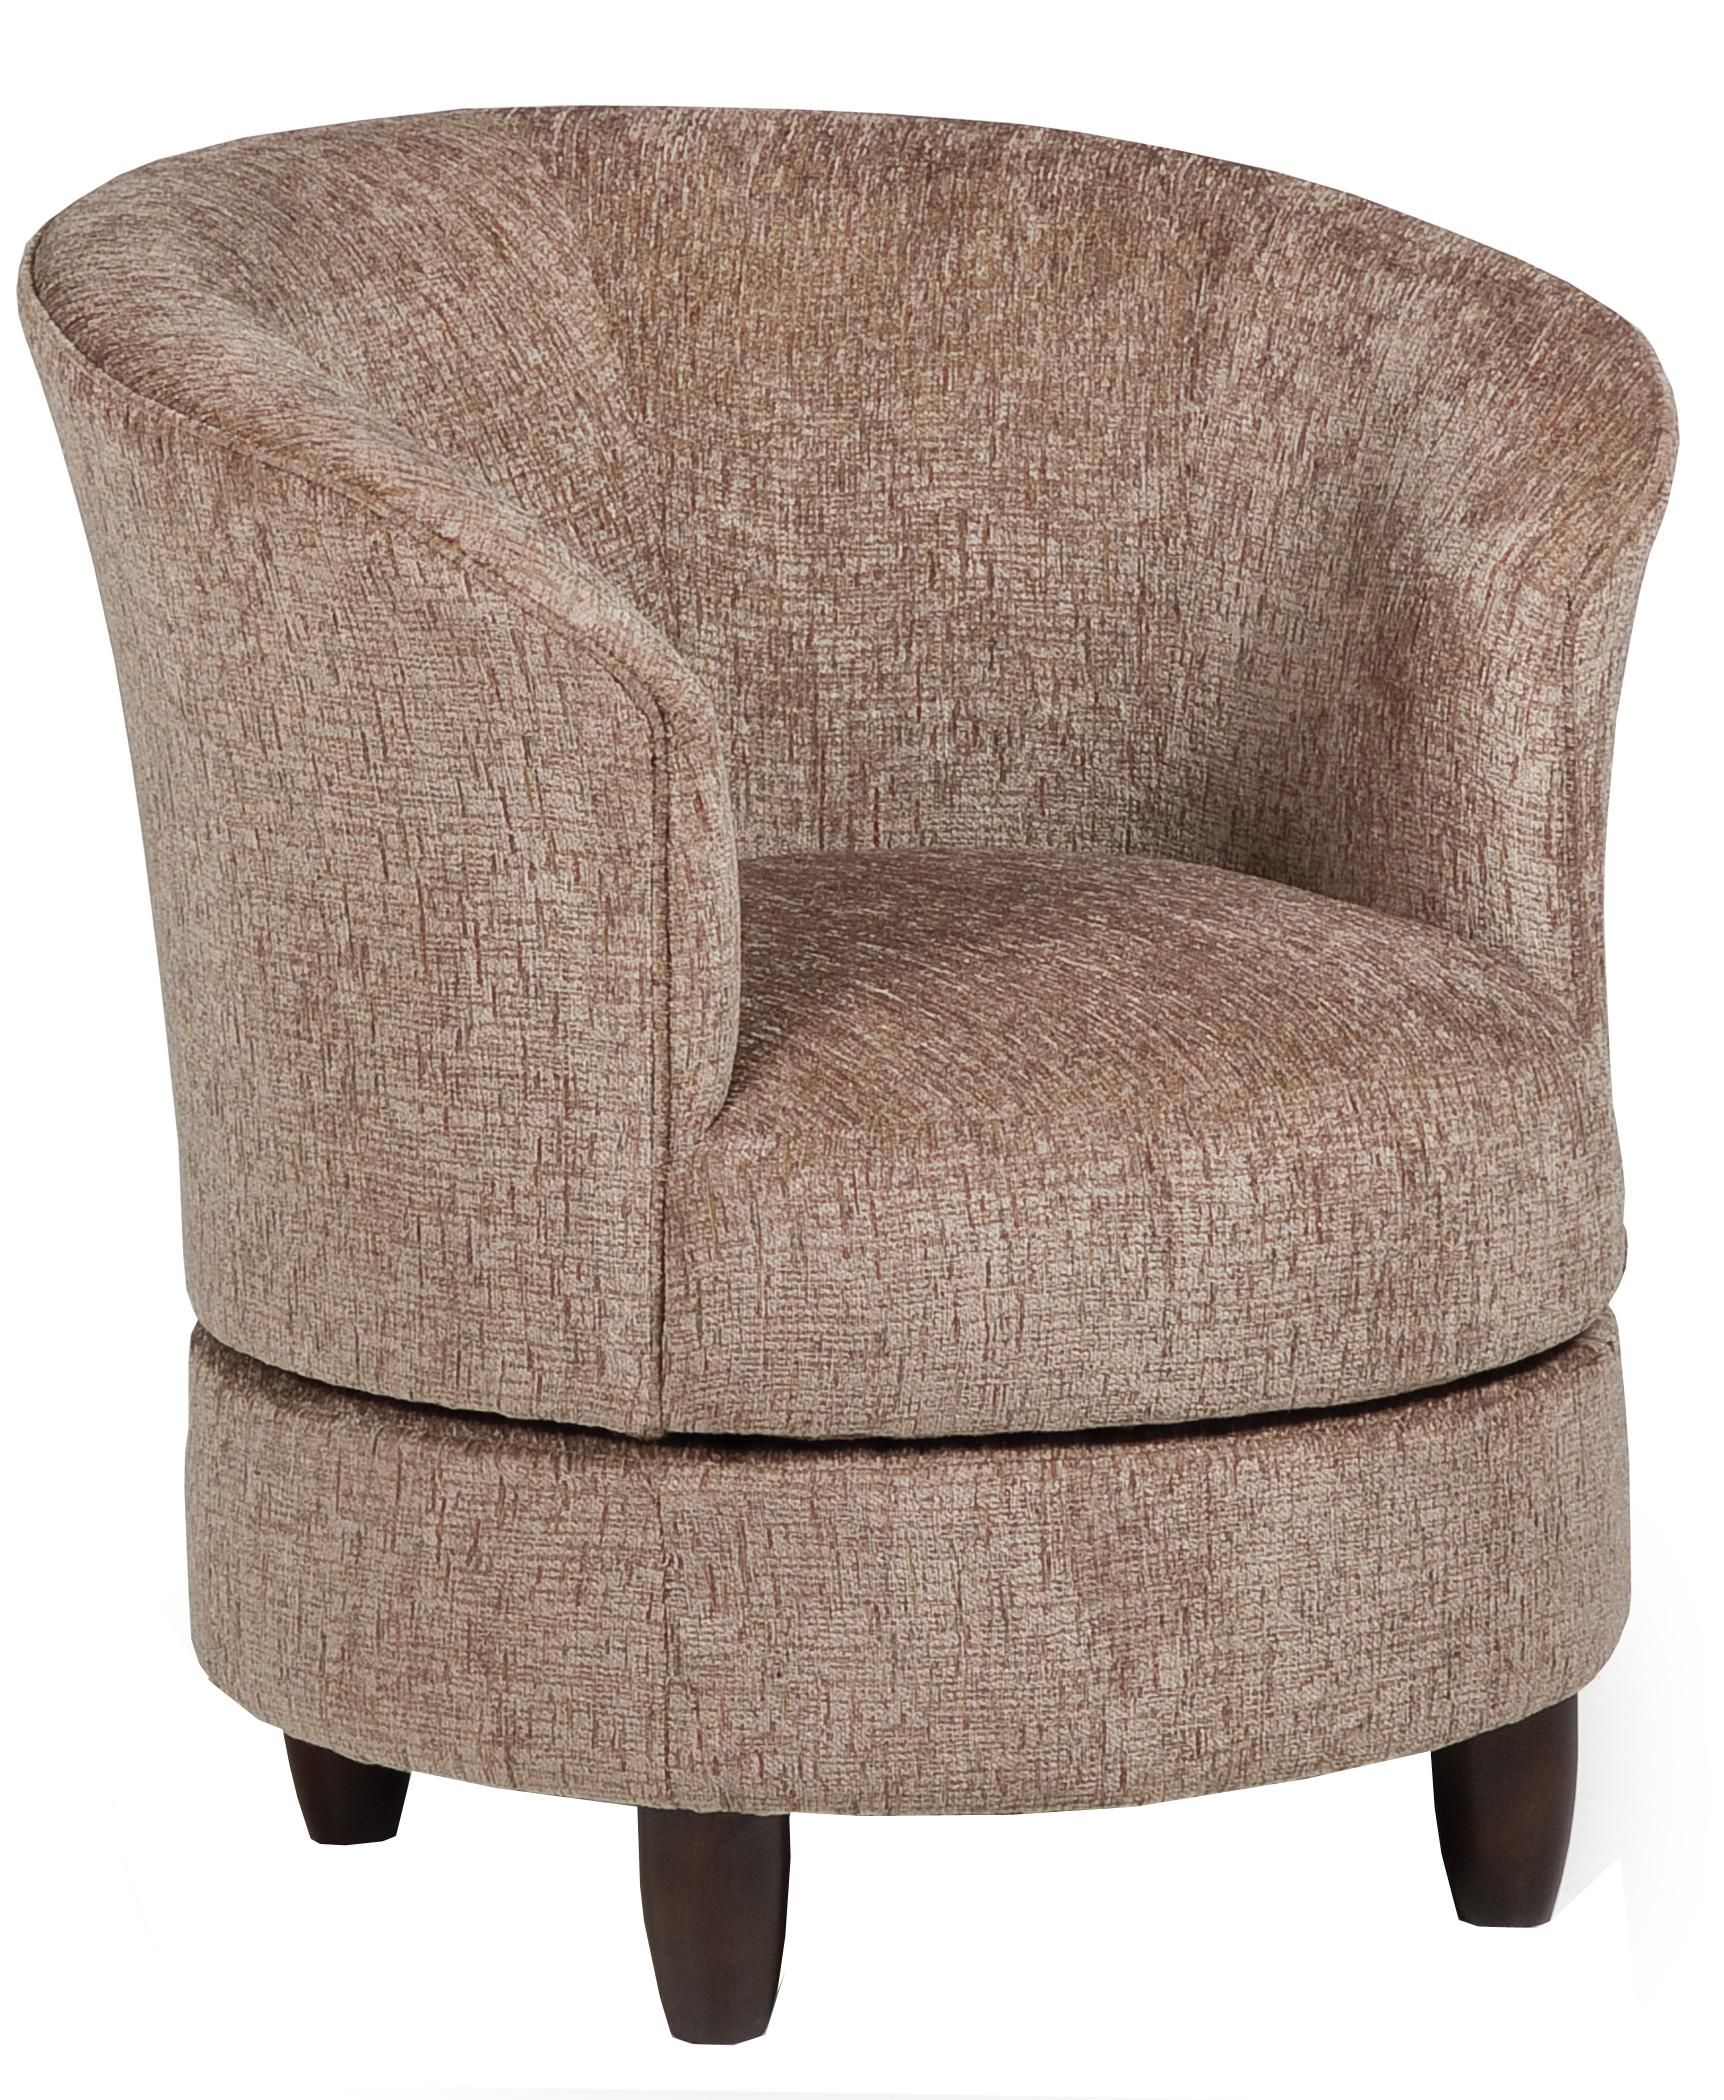 Accent Chairs Swivel Barrel Chair By